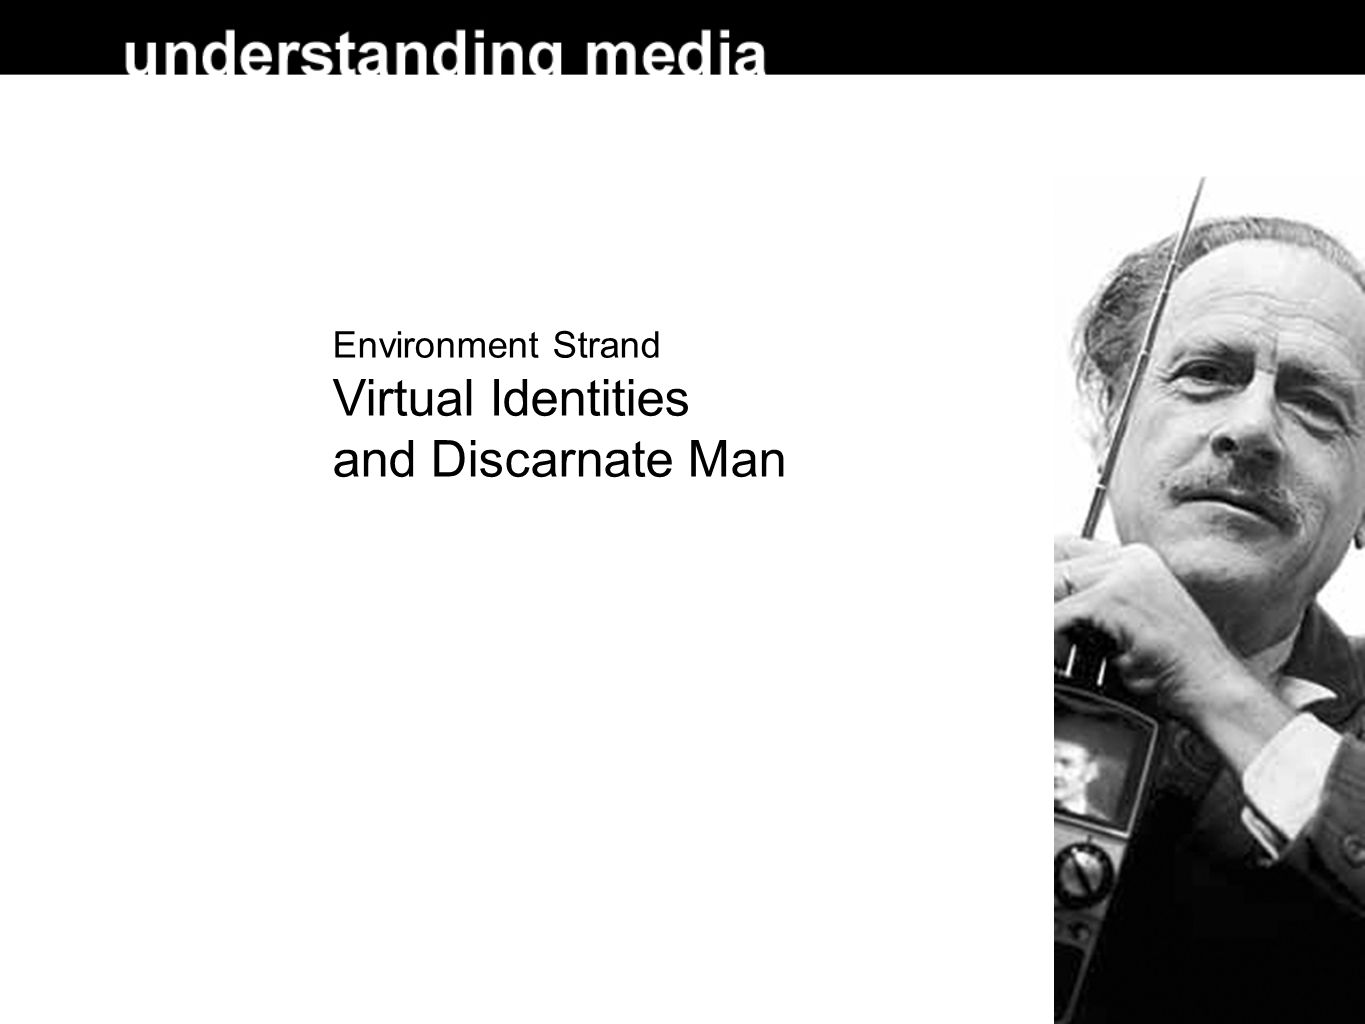 Environment Strand Virtual Identities and Discarnate Man